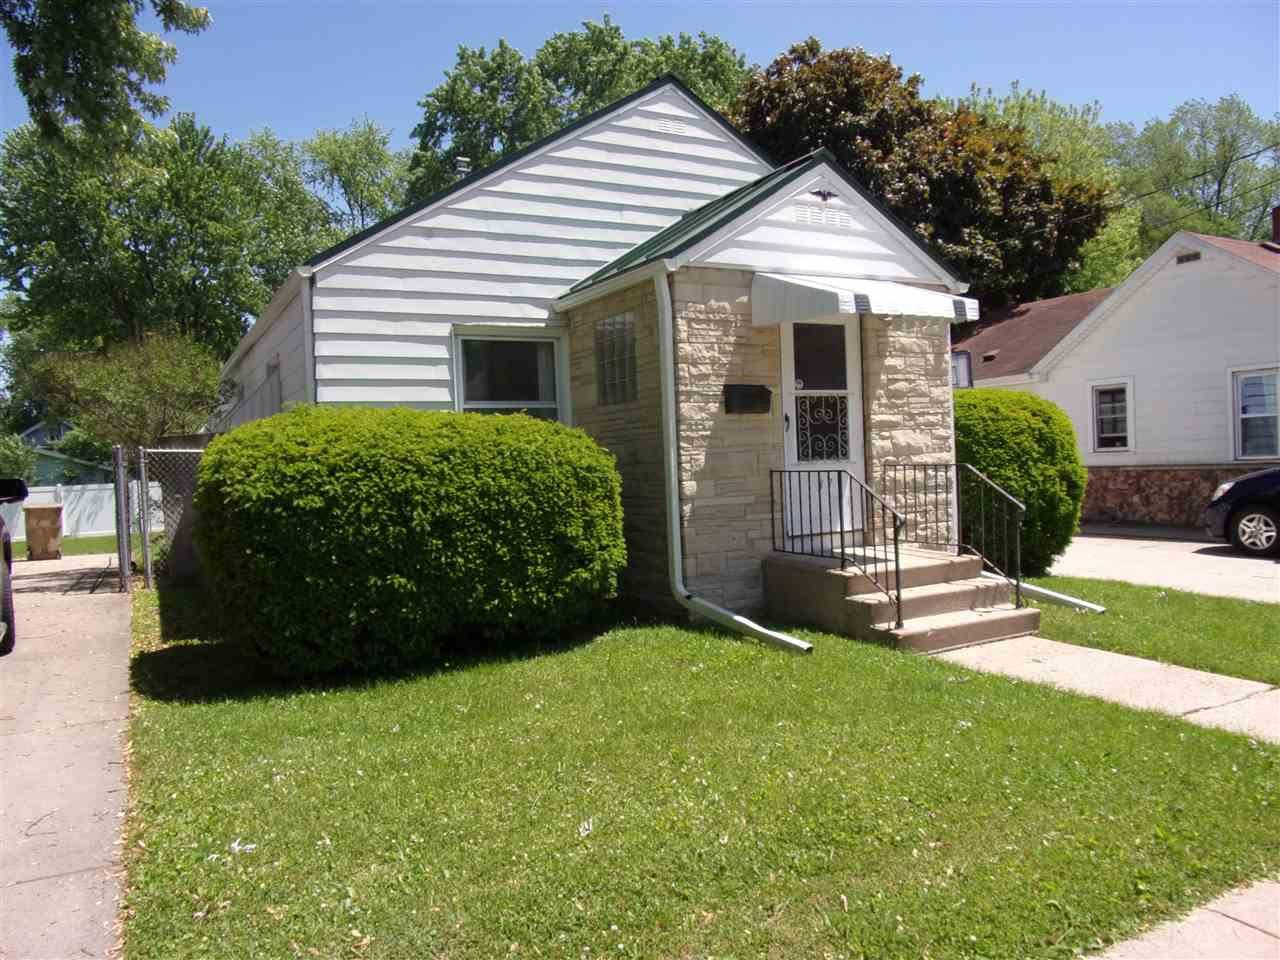 37 S Marquette St, Madison, WI 53704 - MLS#: 1885153